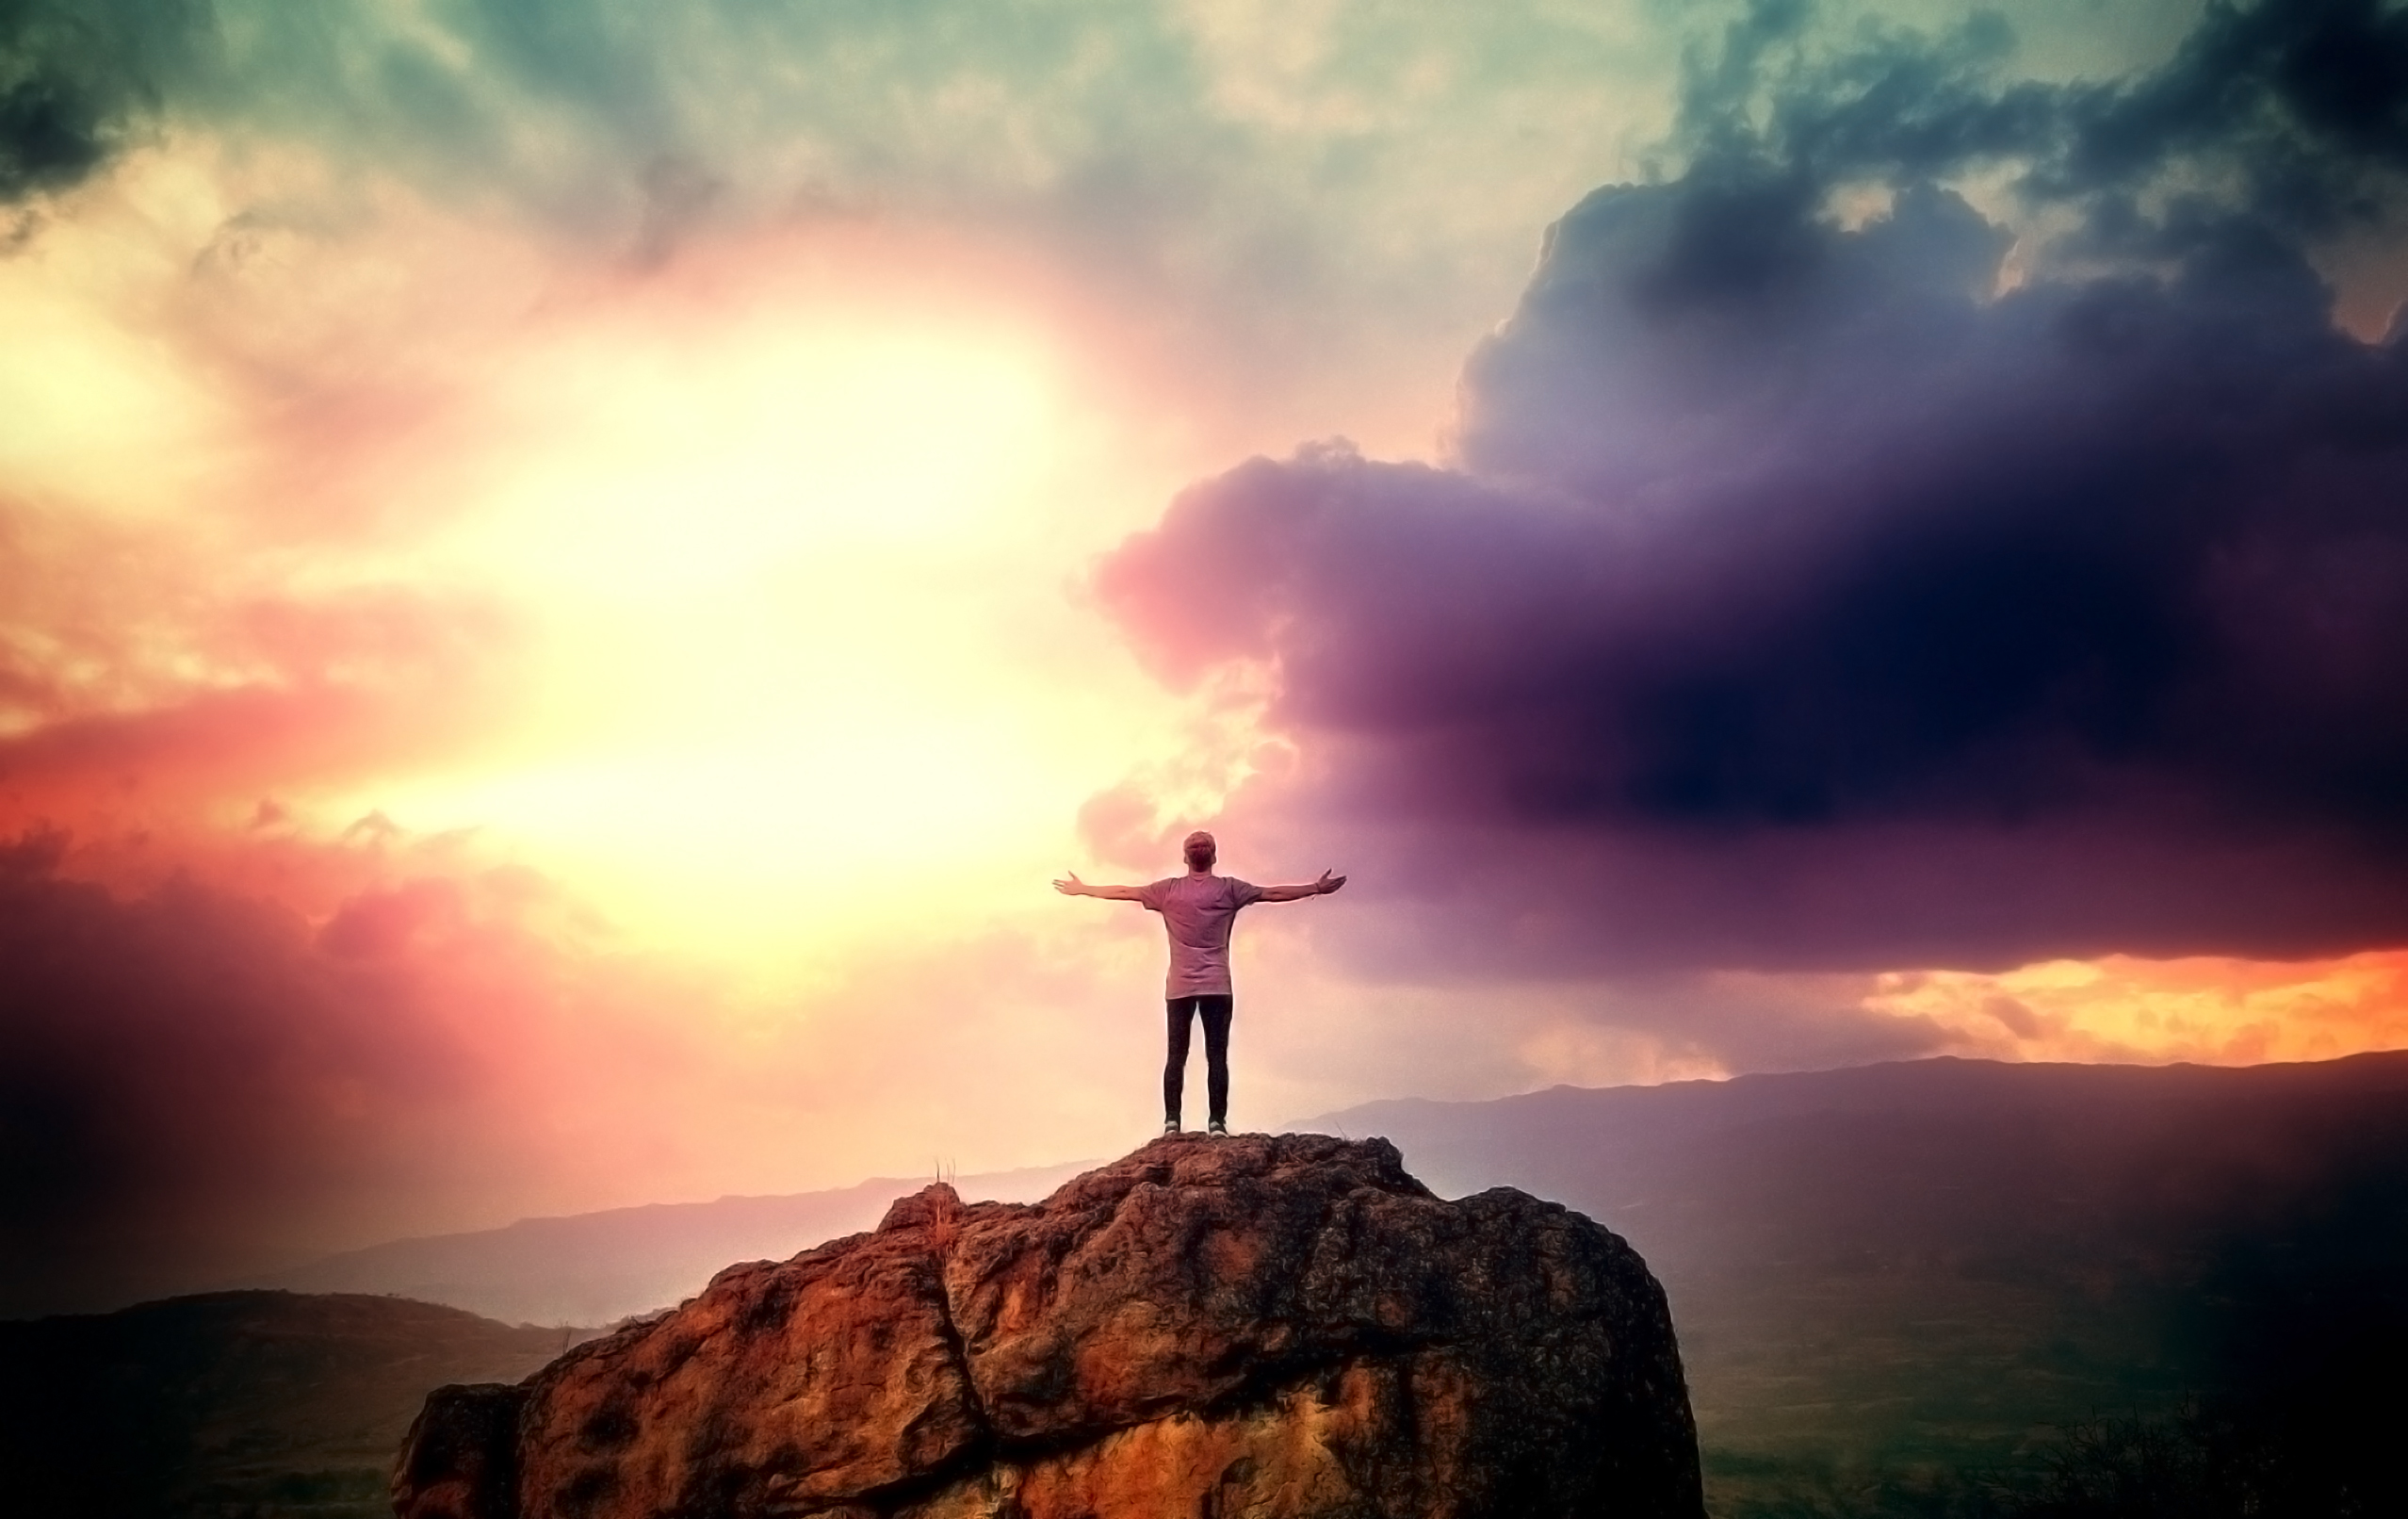 Man on the summit embracing a brave new day photo